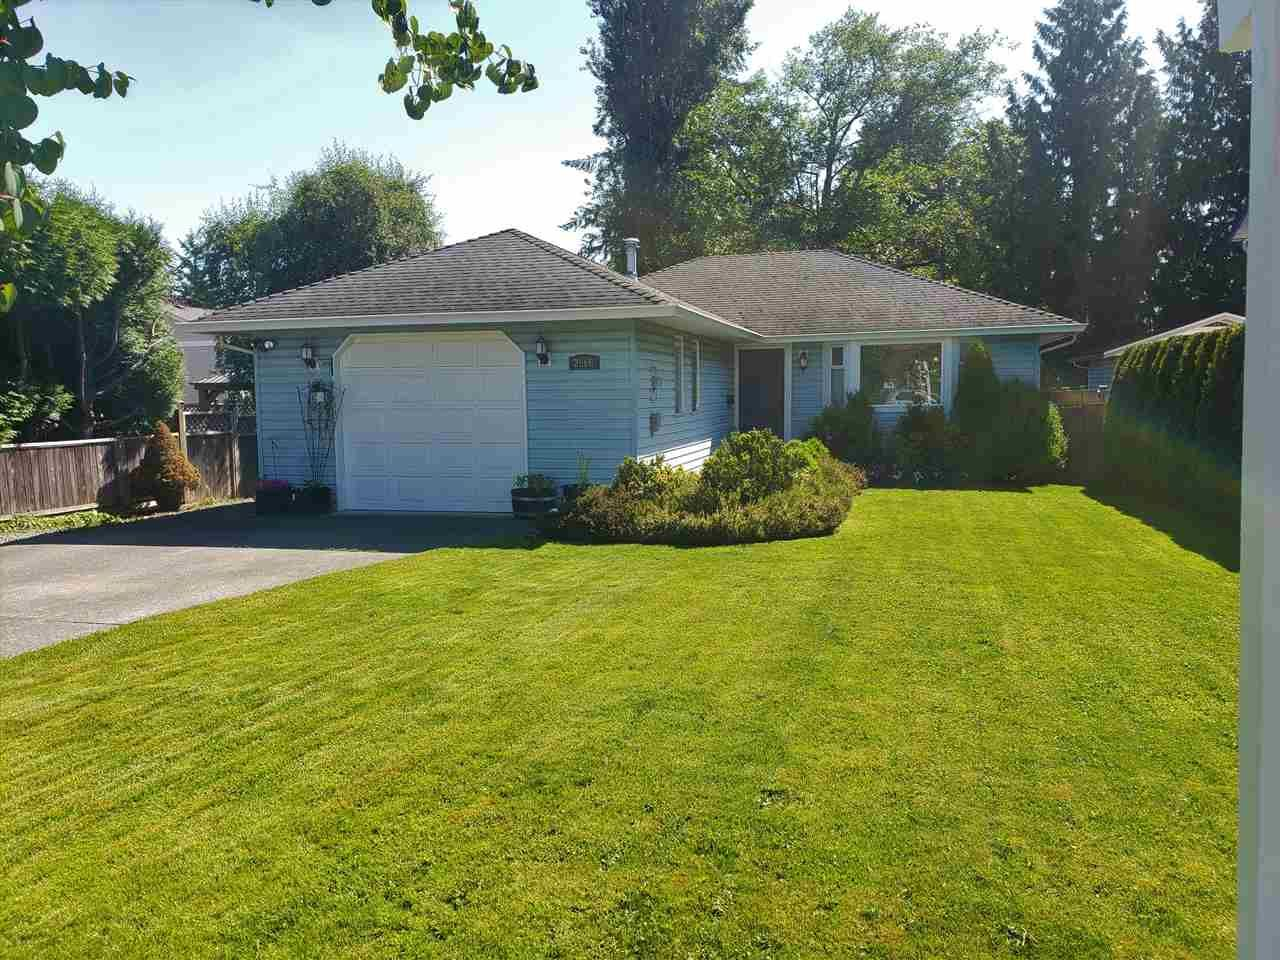 """Main Photo: 2966 264A Street in Langley: Aldergrove Langley House for sale in """"Aldergrove"""" : MLS®# R2373137"""